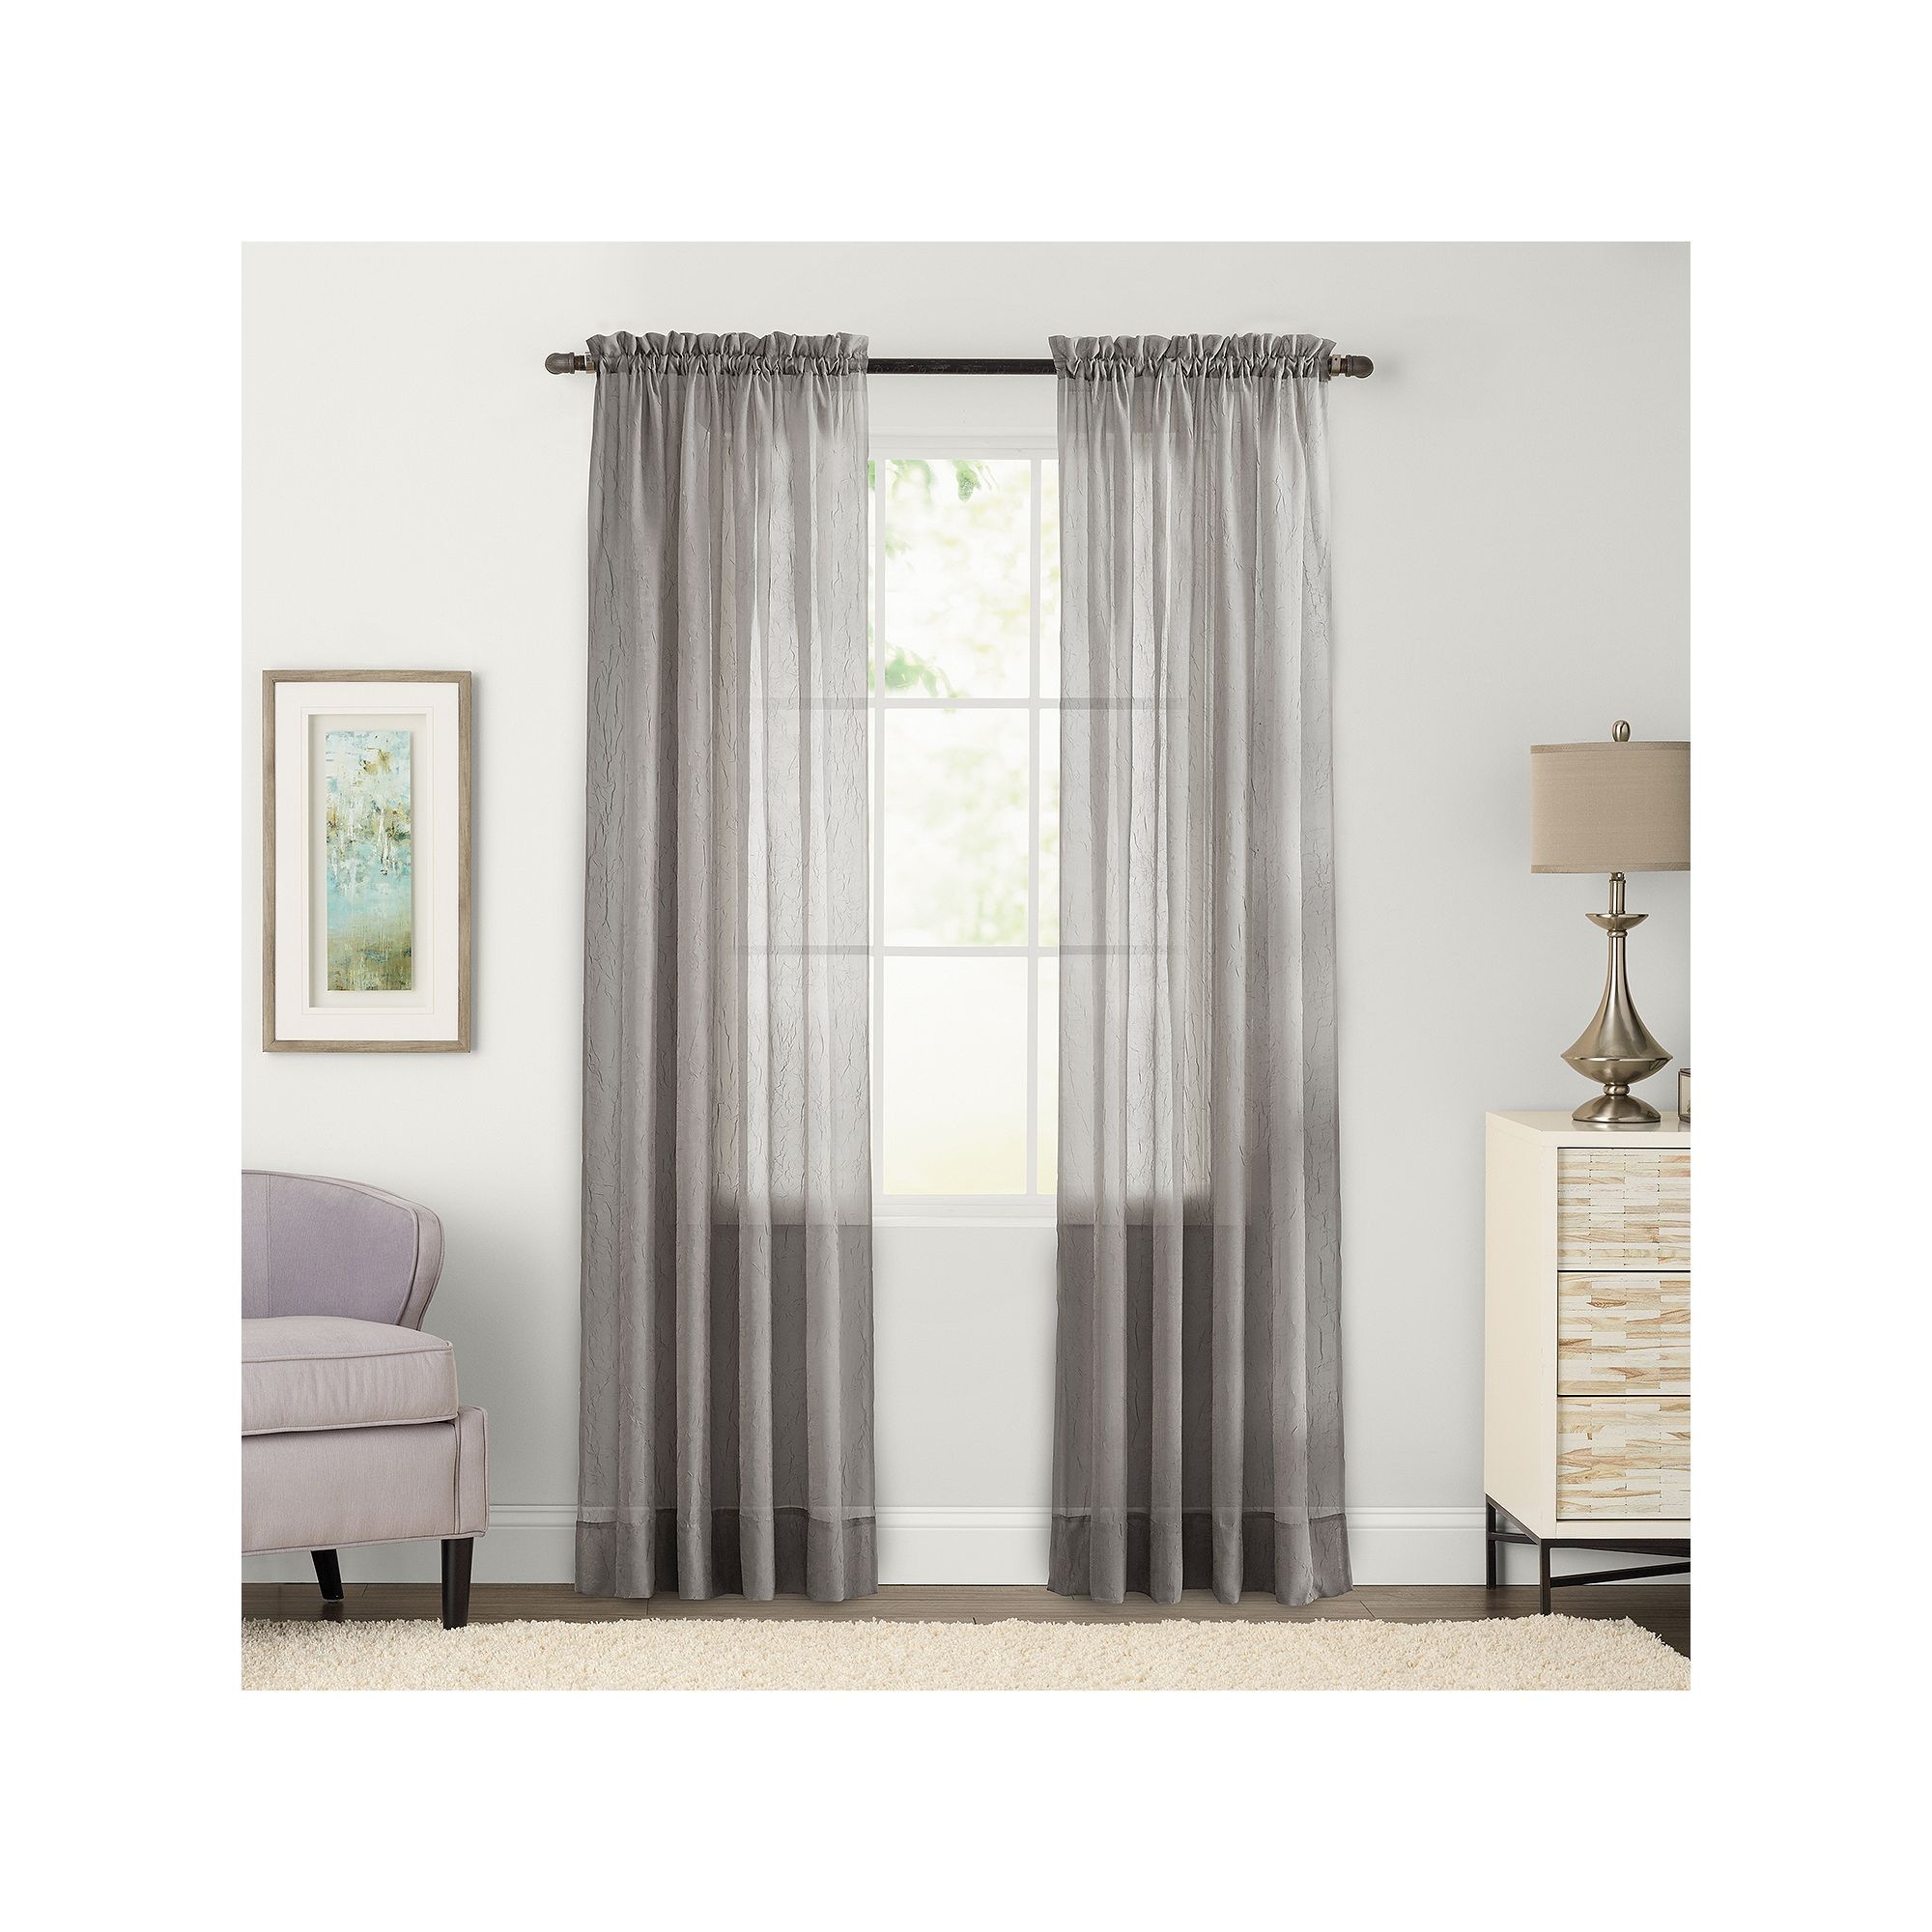 Sonoma Goods For Life 1 Panel Crushed Voile Sheer Window Curtain